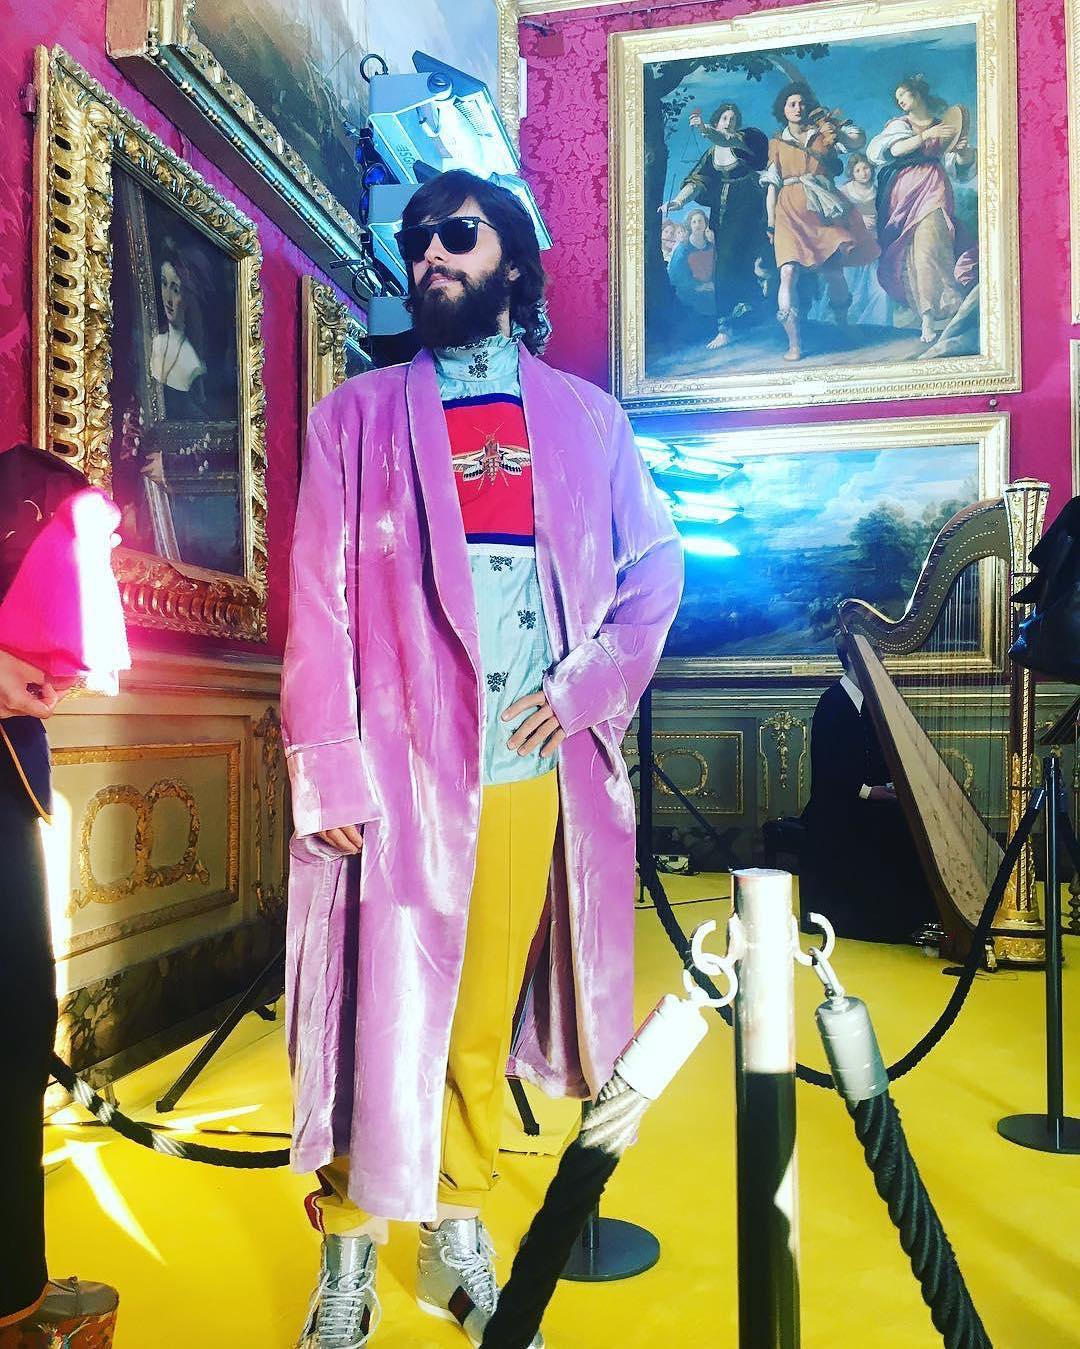 SPOTTED: Jared Leto Wears Gucci in Florence